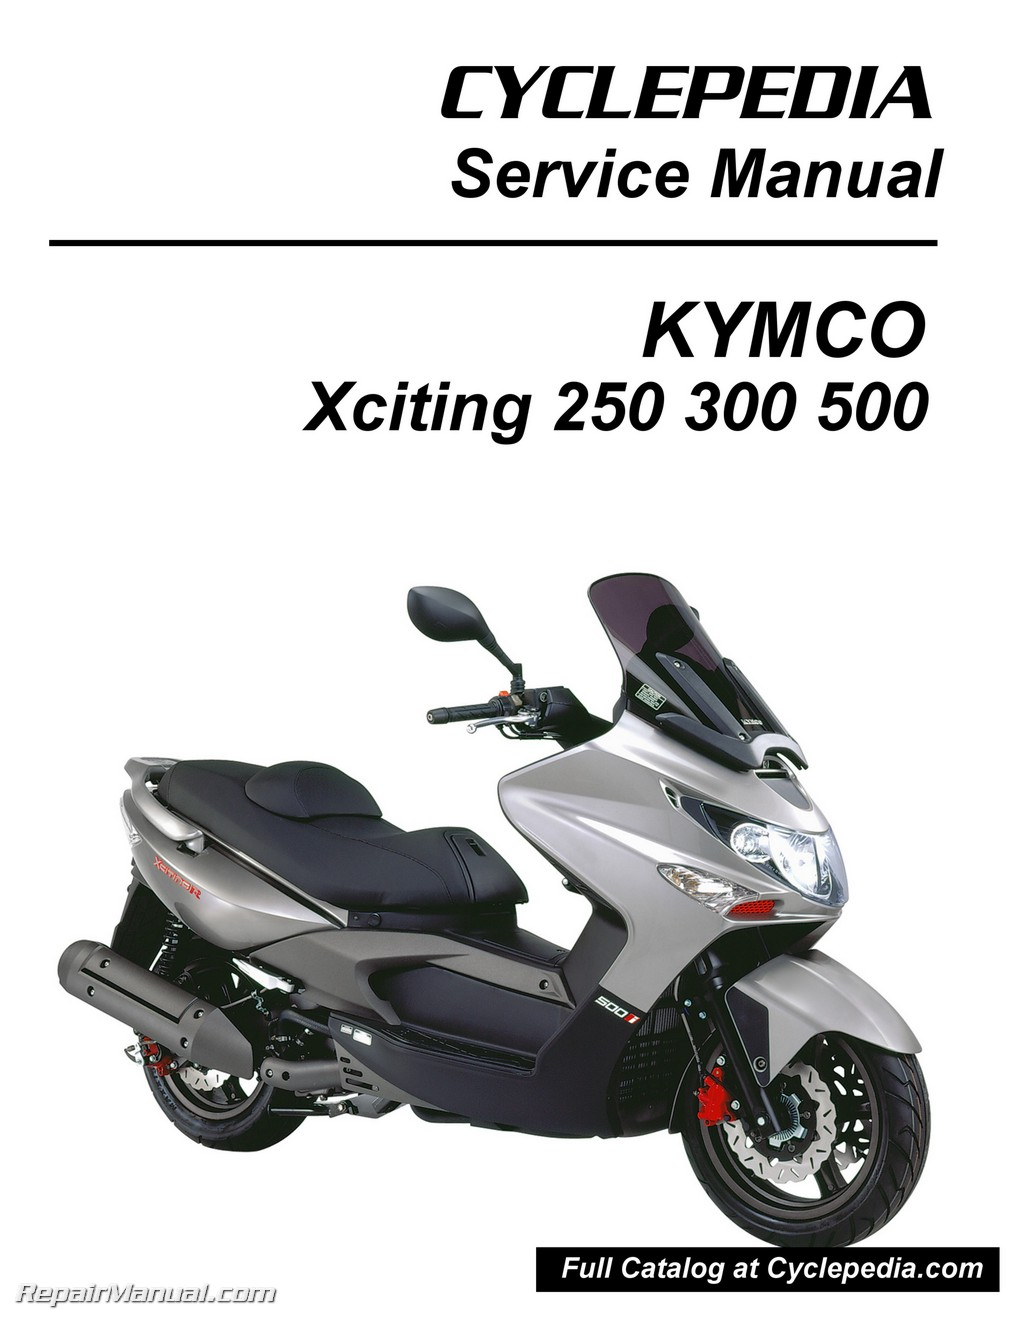 kymco xciting 500 full service repair manual